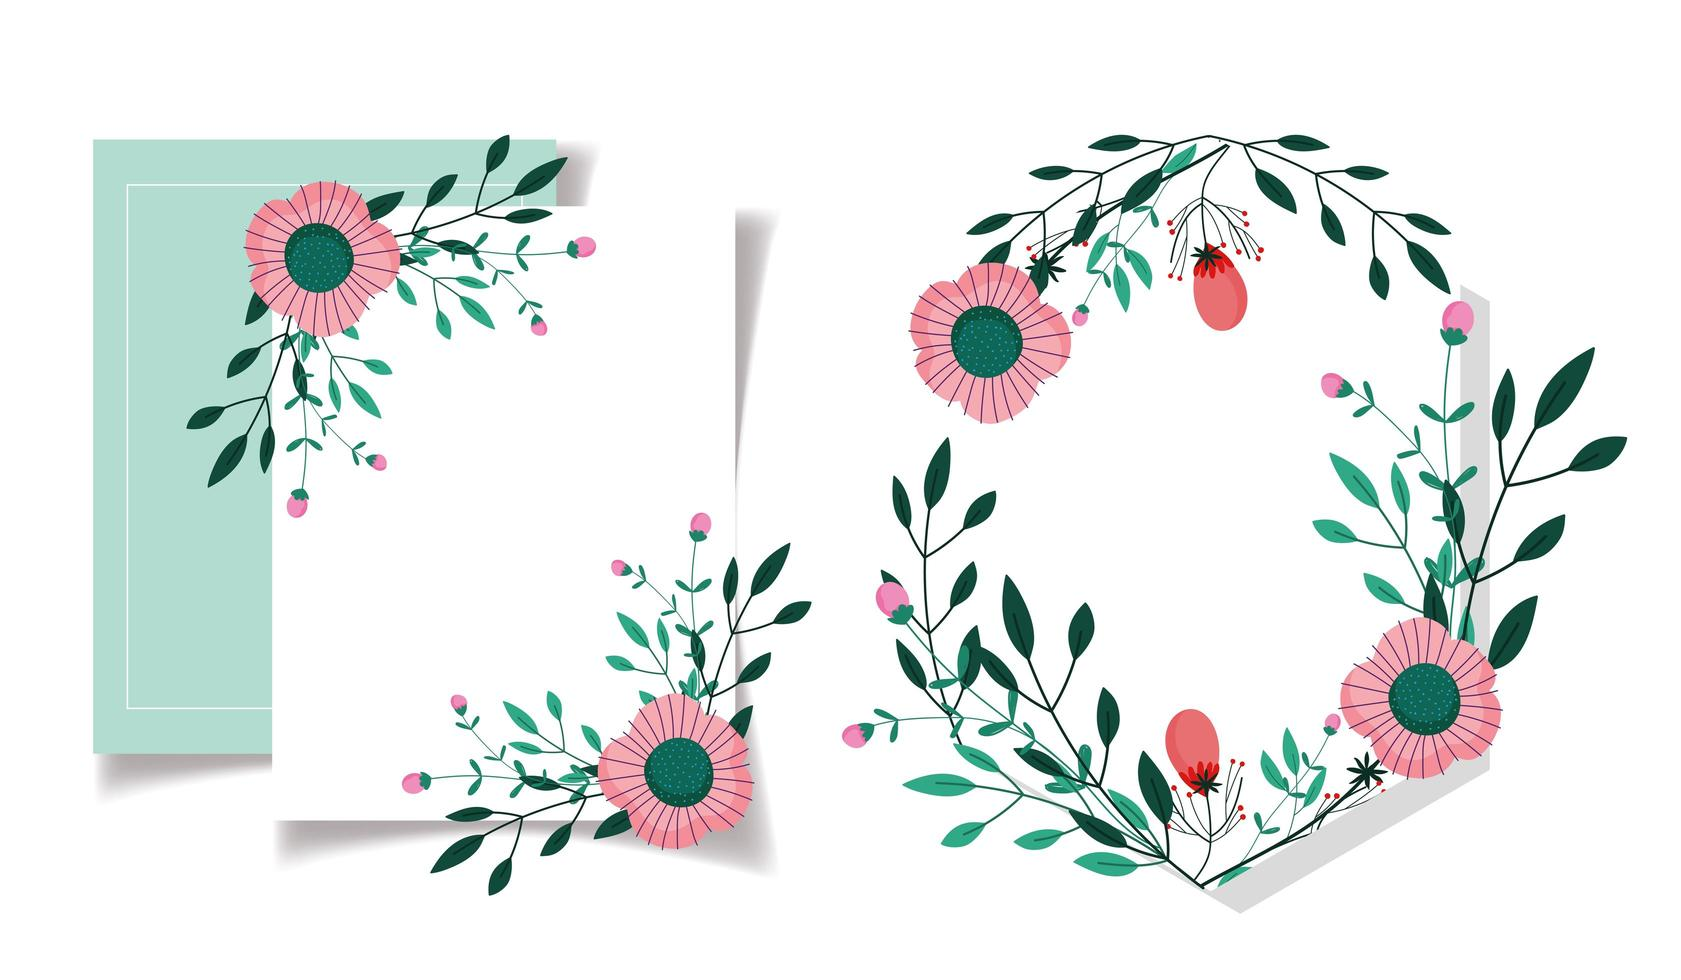 Floral greeting card template - Download Free Vectors, Clipart Graphics & Vector Art